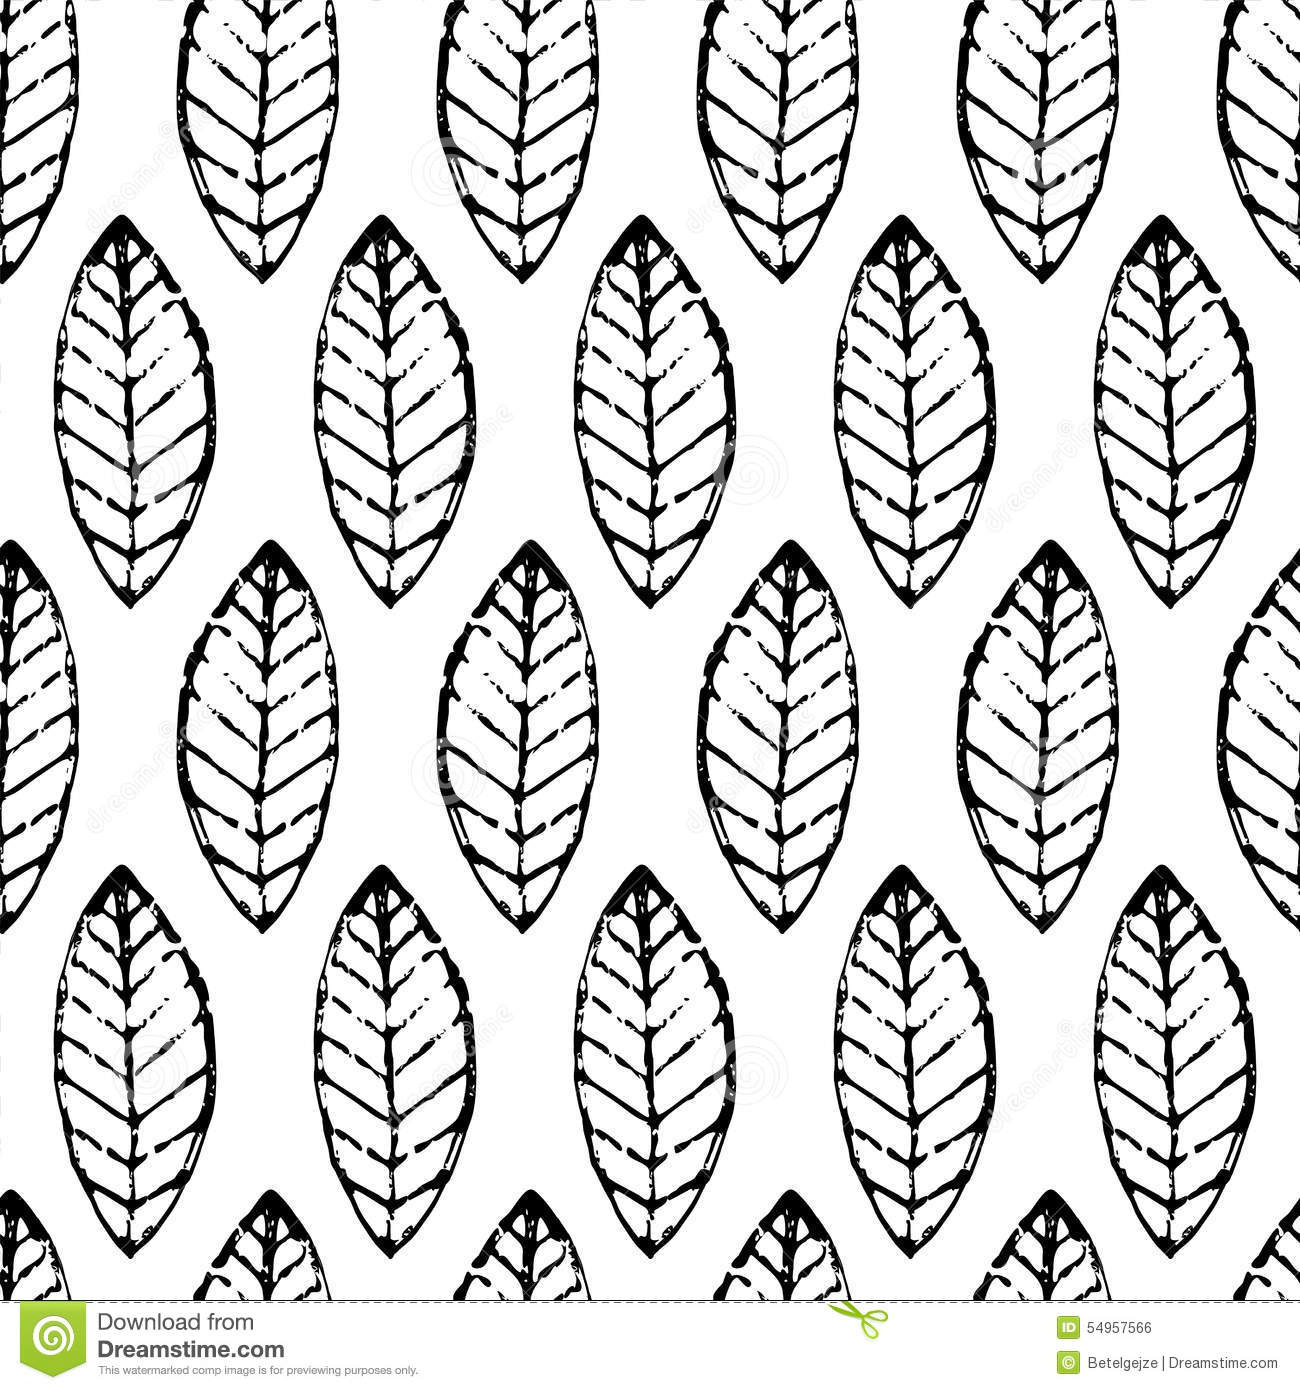 Watercolor Hand Drawn Vector Leaf Seamless Pattern